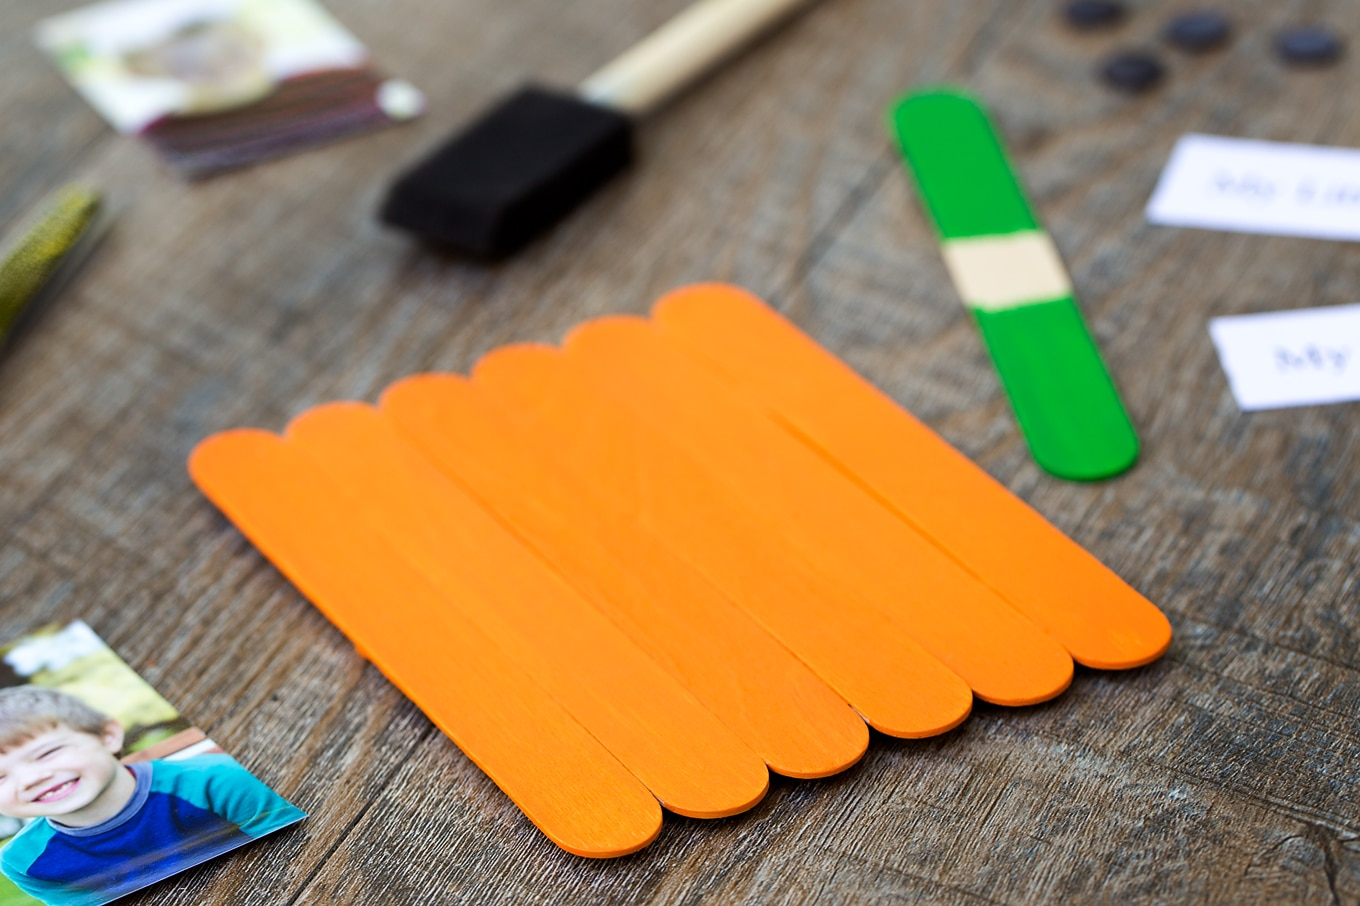 Just in time for fall, learn how to make an adorable My Little Pumpkin Keepsake Craft with craft sticks, paint, and glue.